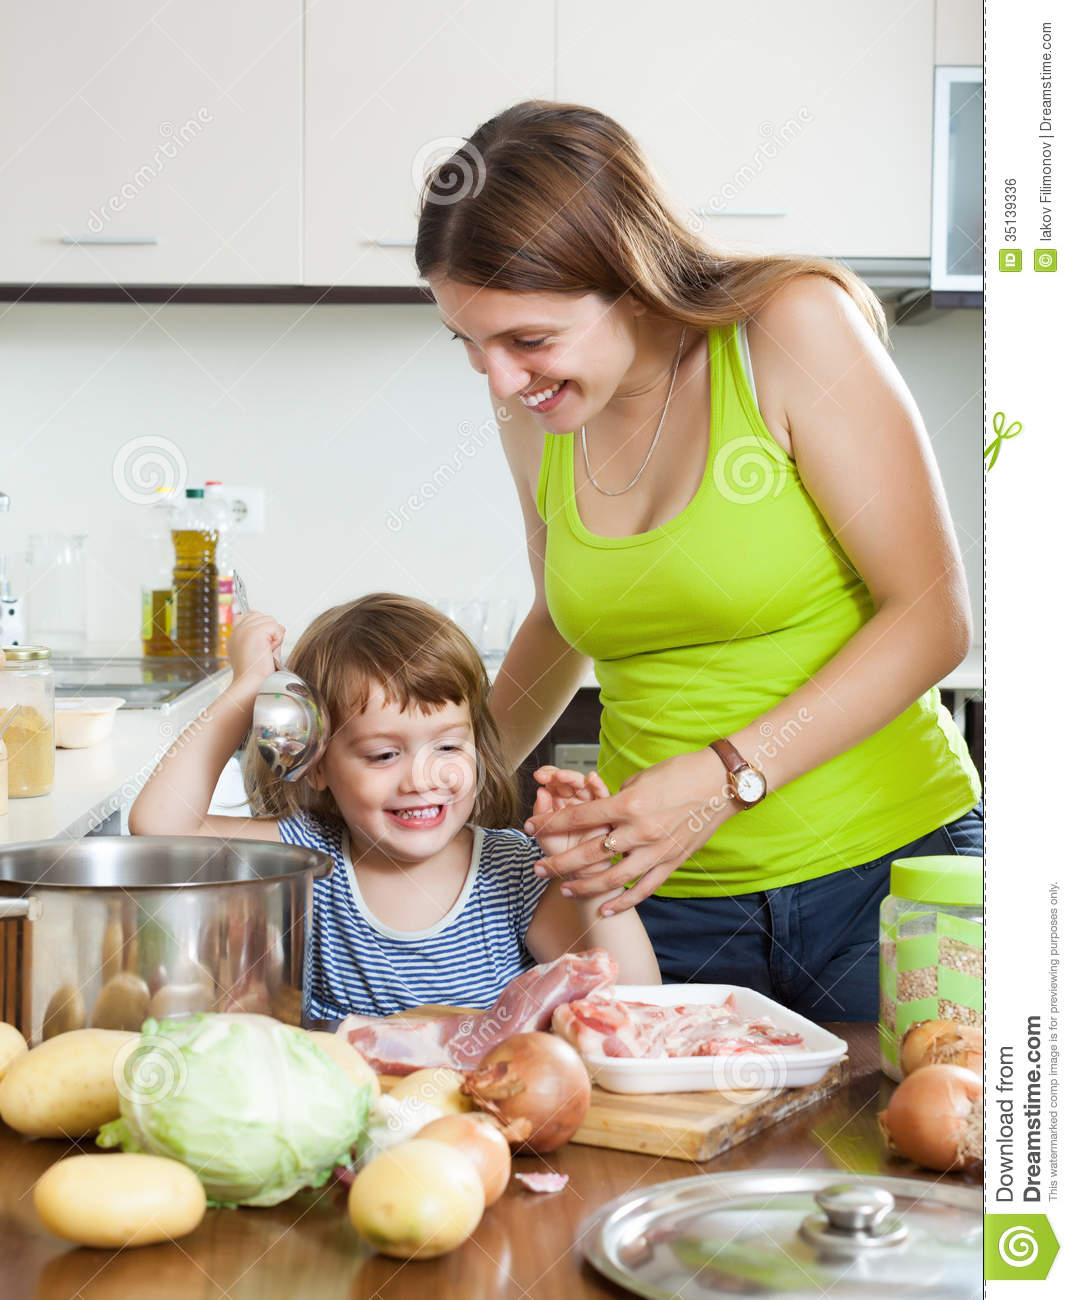 Women Kitchen: Woman With Little Girl Cooking Together Stock Photo